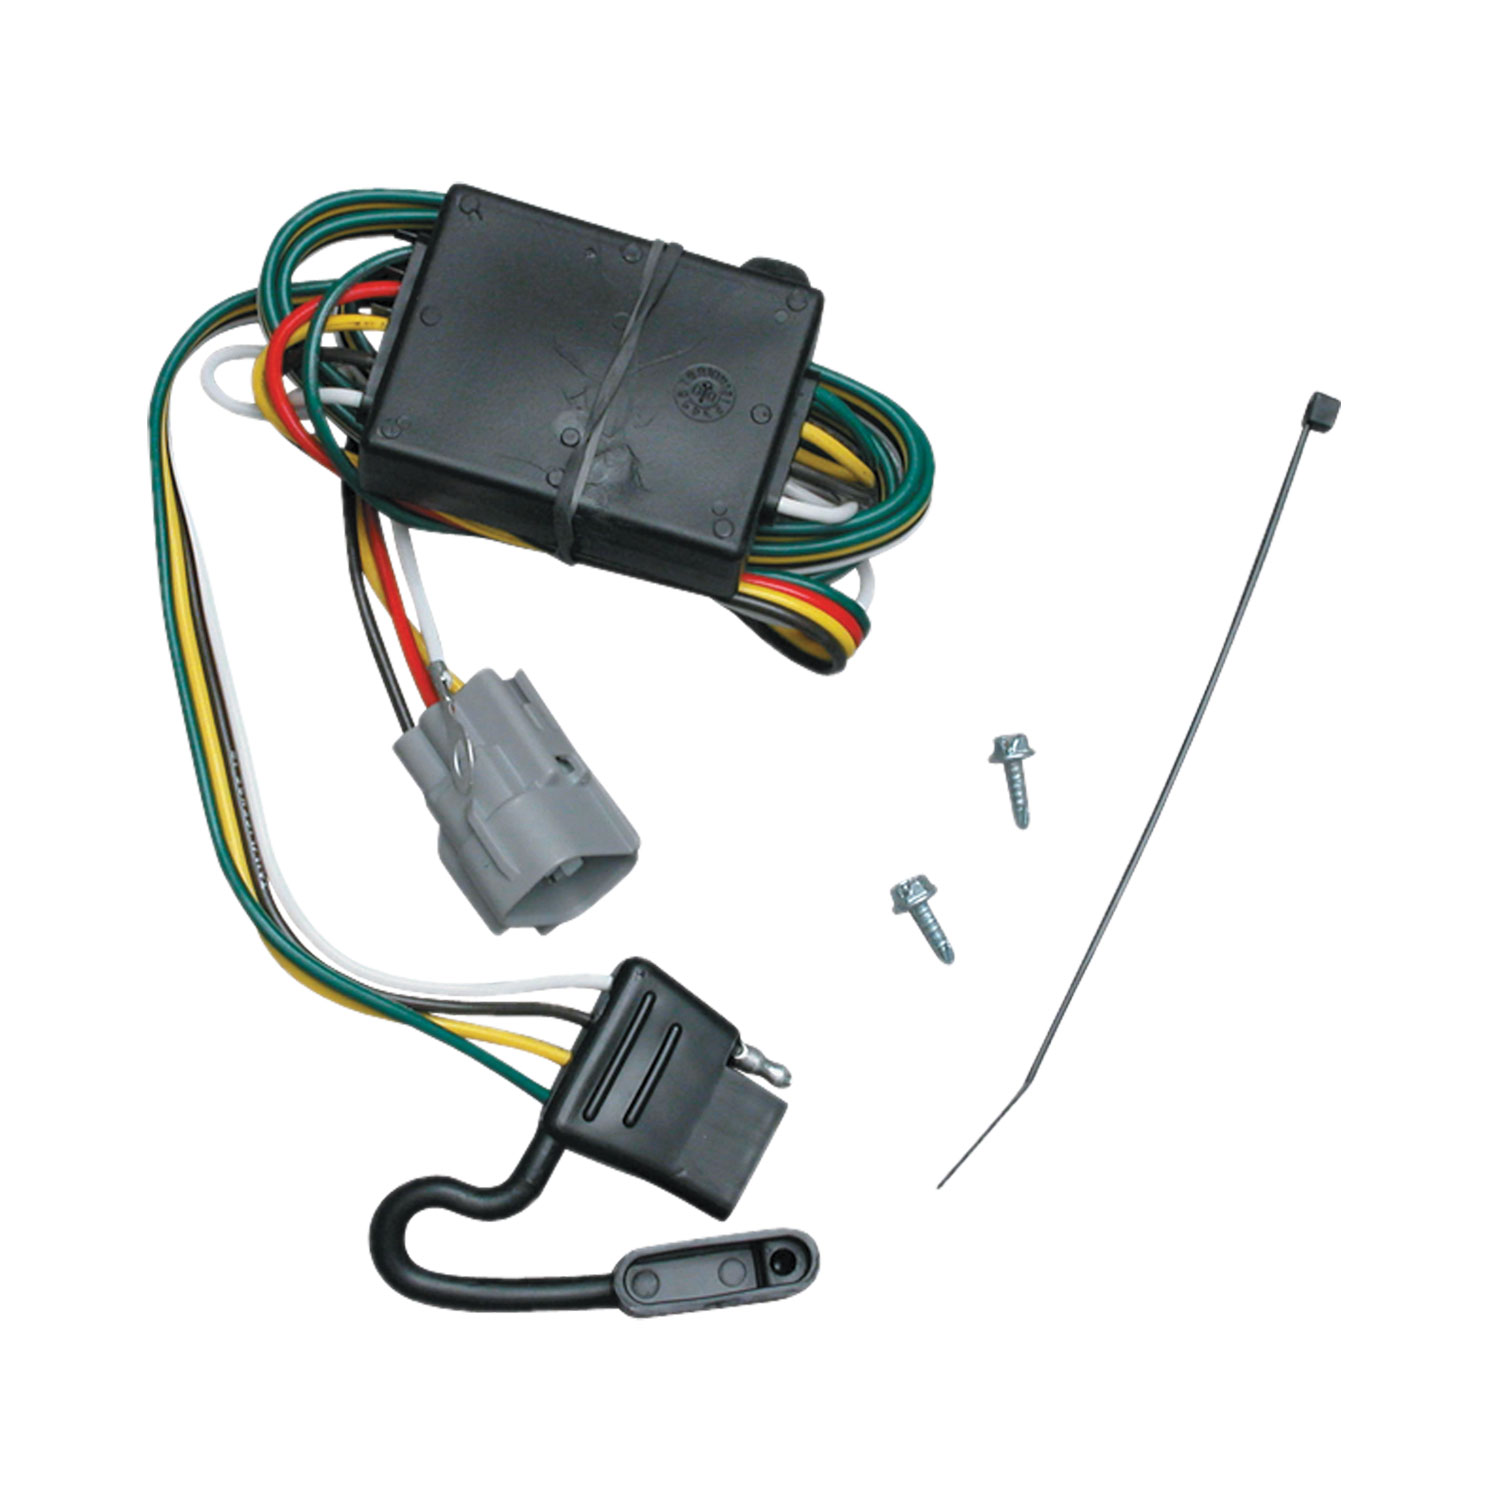 hight resolution of tekonsha 118365 trailer wiring connector t one 4 way flat replacement for oem wiring harness